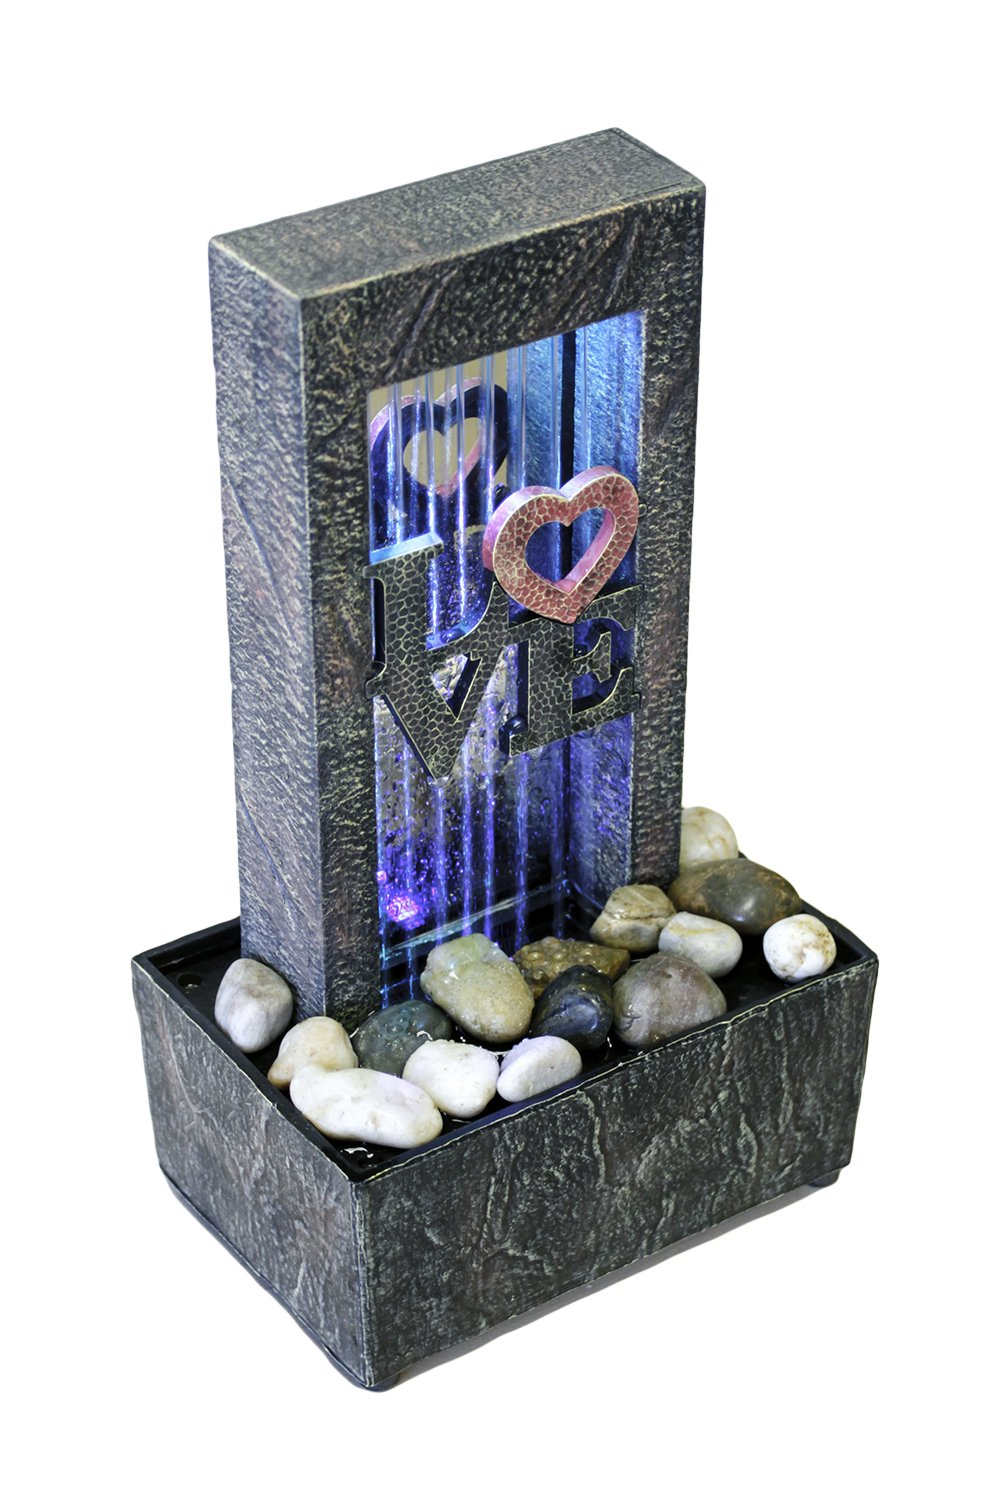 Newport coast collection Raining Love Color Changing LED Fountain